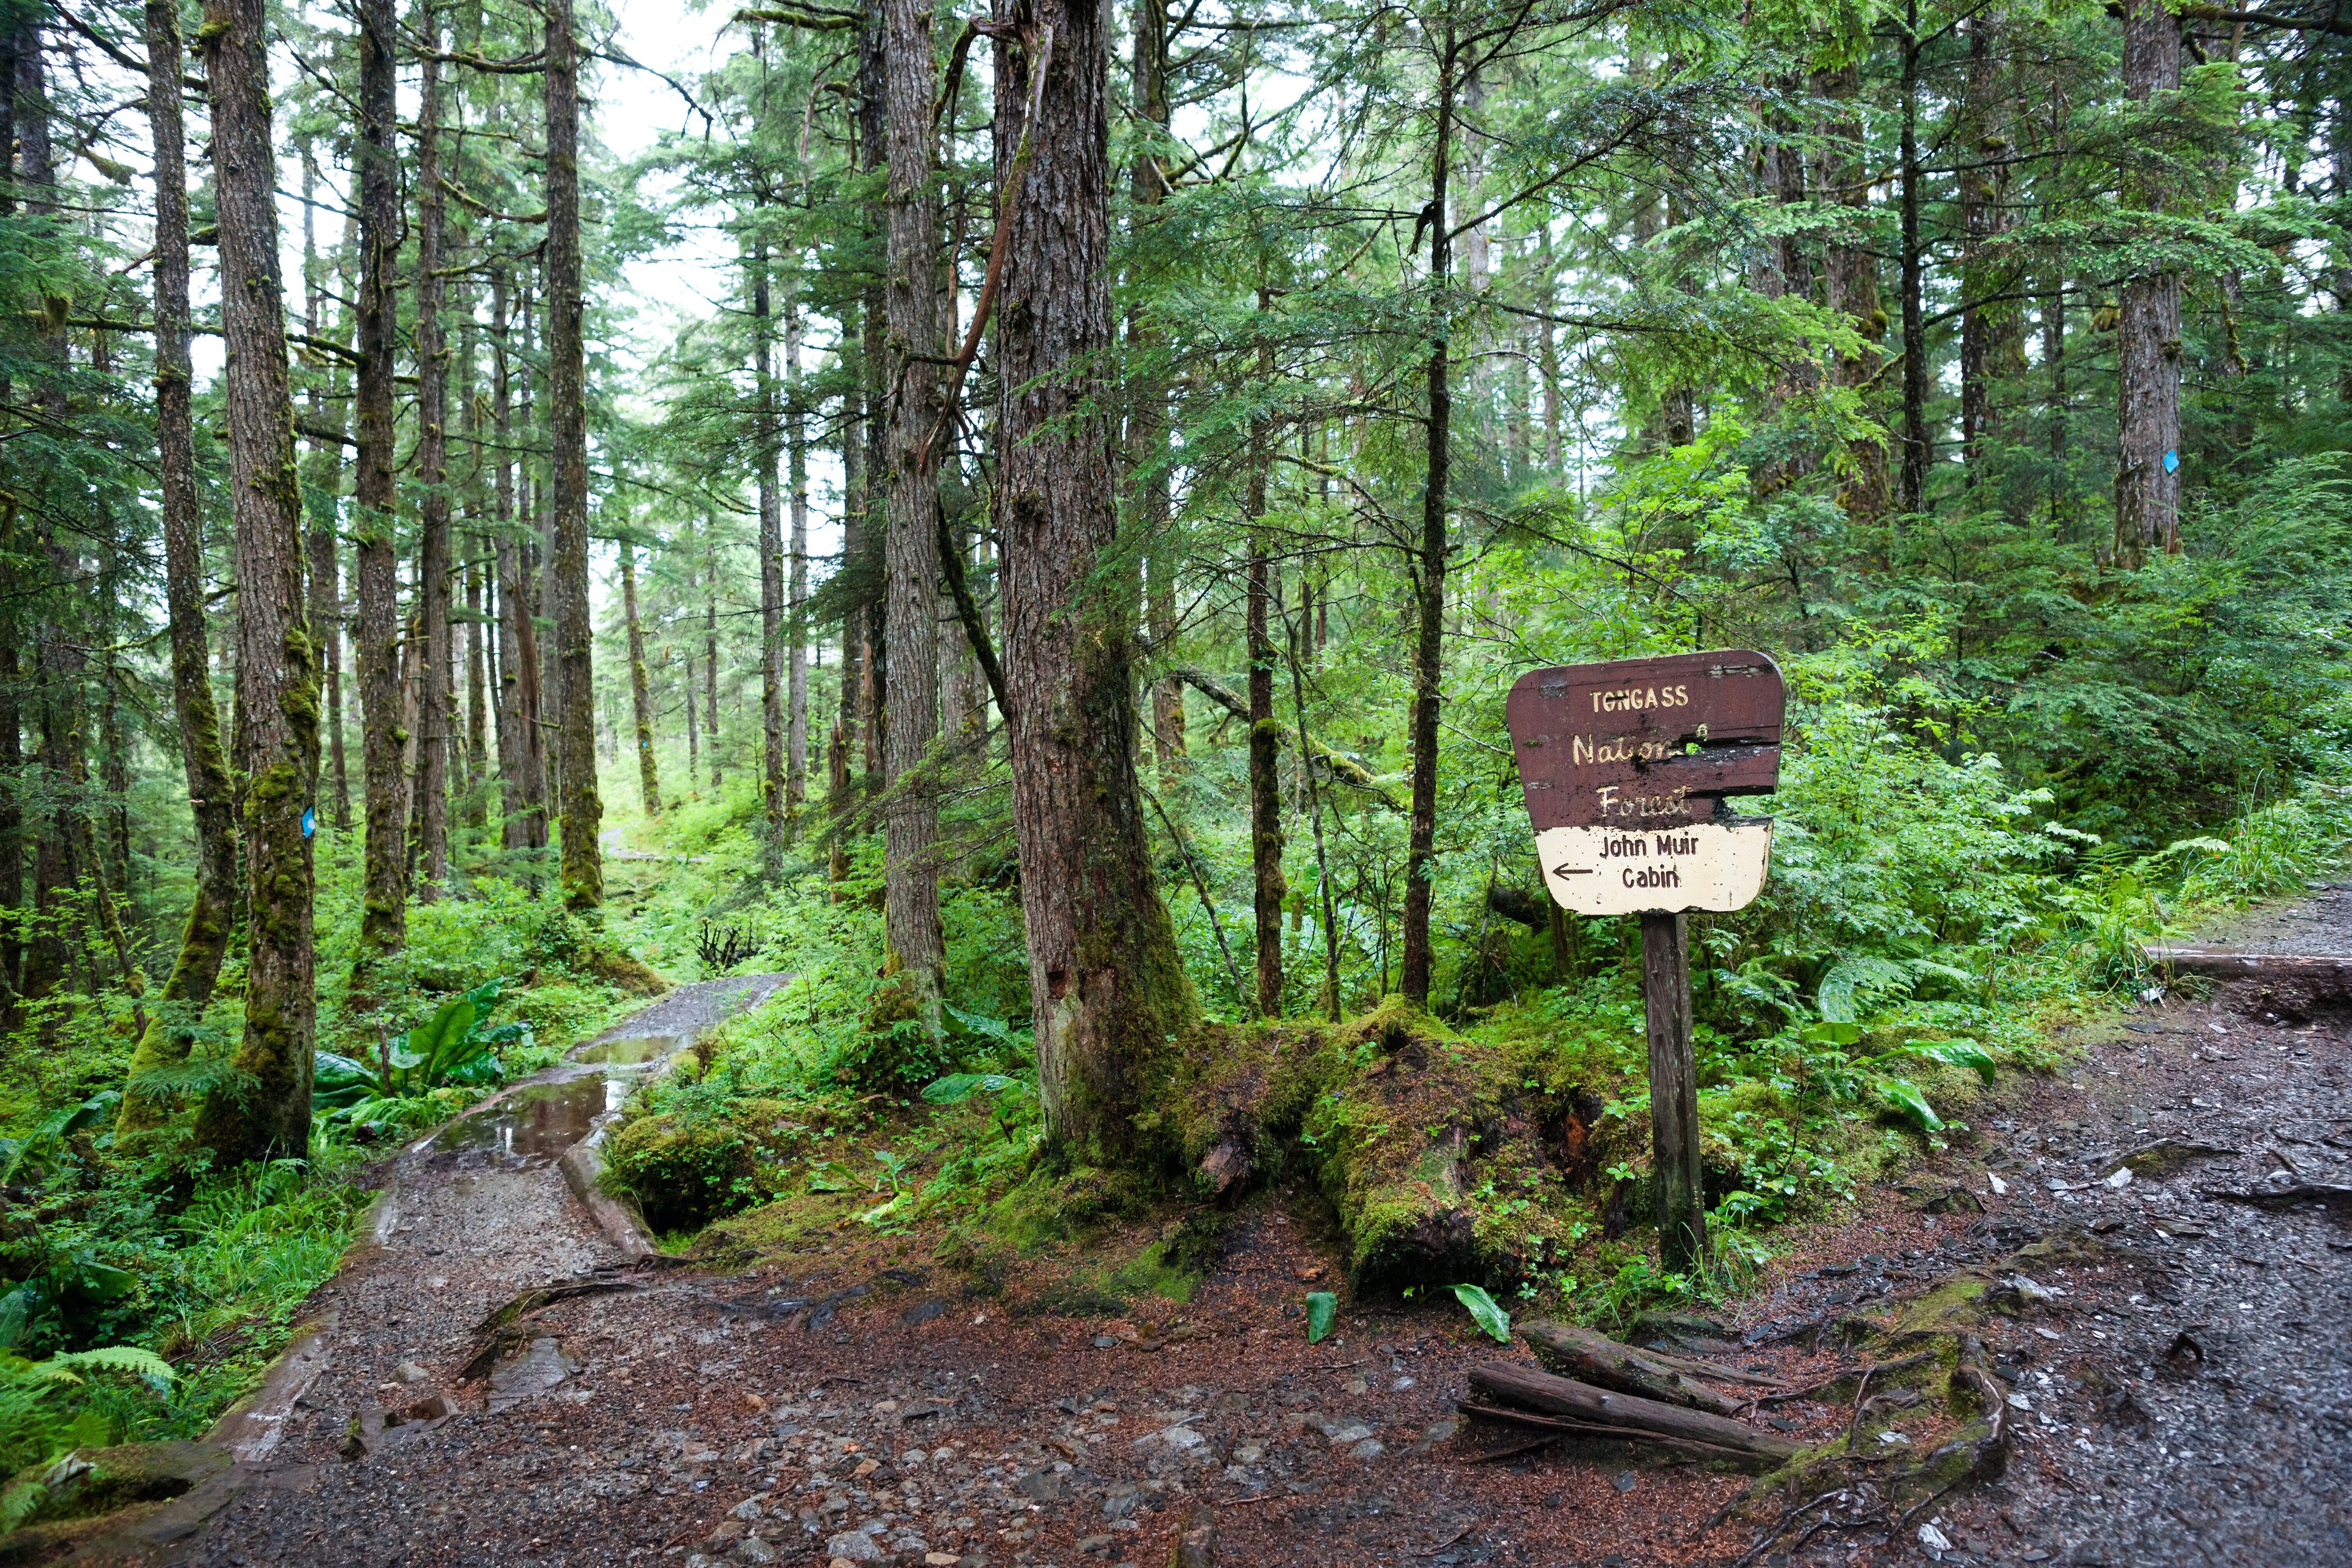 Signage to John Muir's cabin in Alaska's Tongass National Forest.